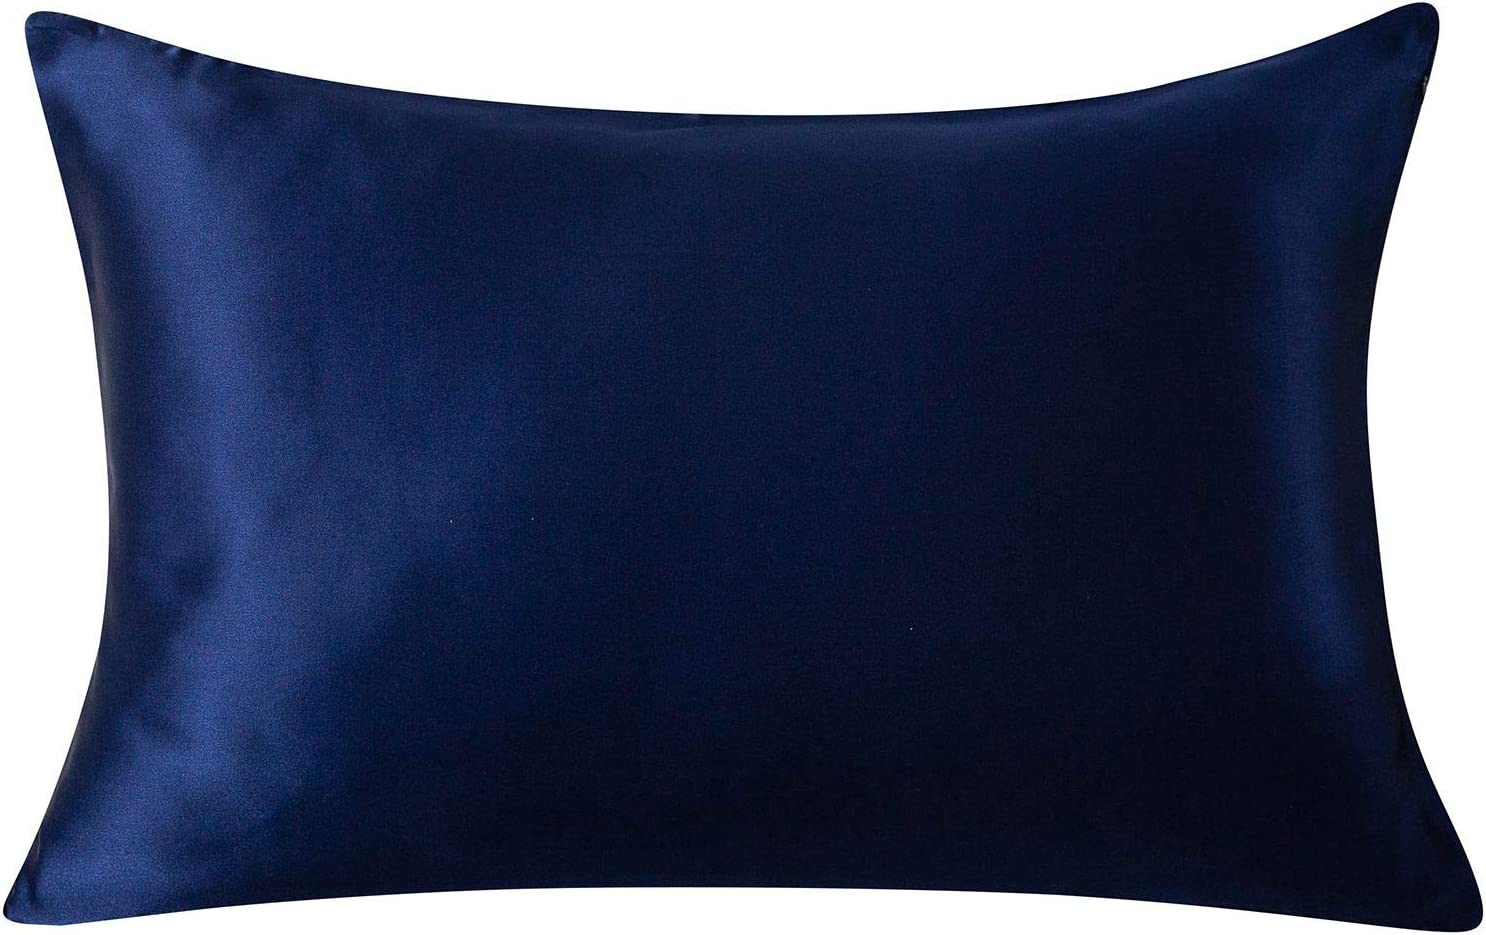 SLPBABY 100% Natural Pure Silk Pillowcase for Hair and Skin, Both Side 19 Momme Silk, Luxury Smooth Satin Pillowcase Cover with Hidden Zipper (Queen, Navy Blue)